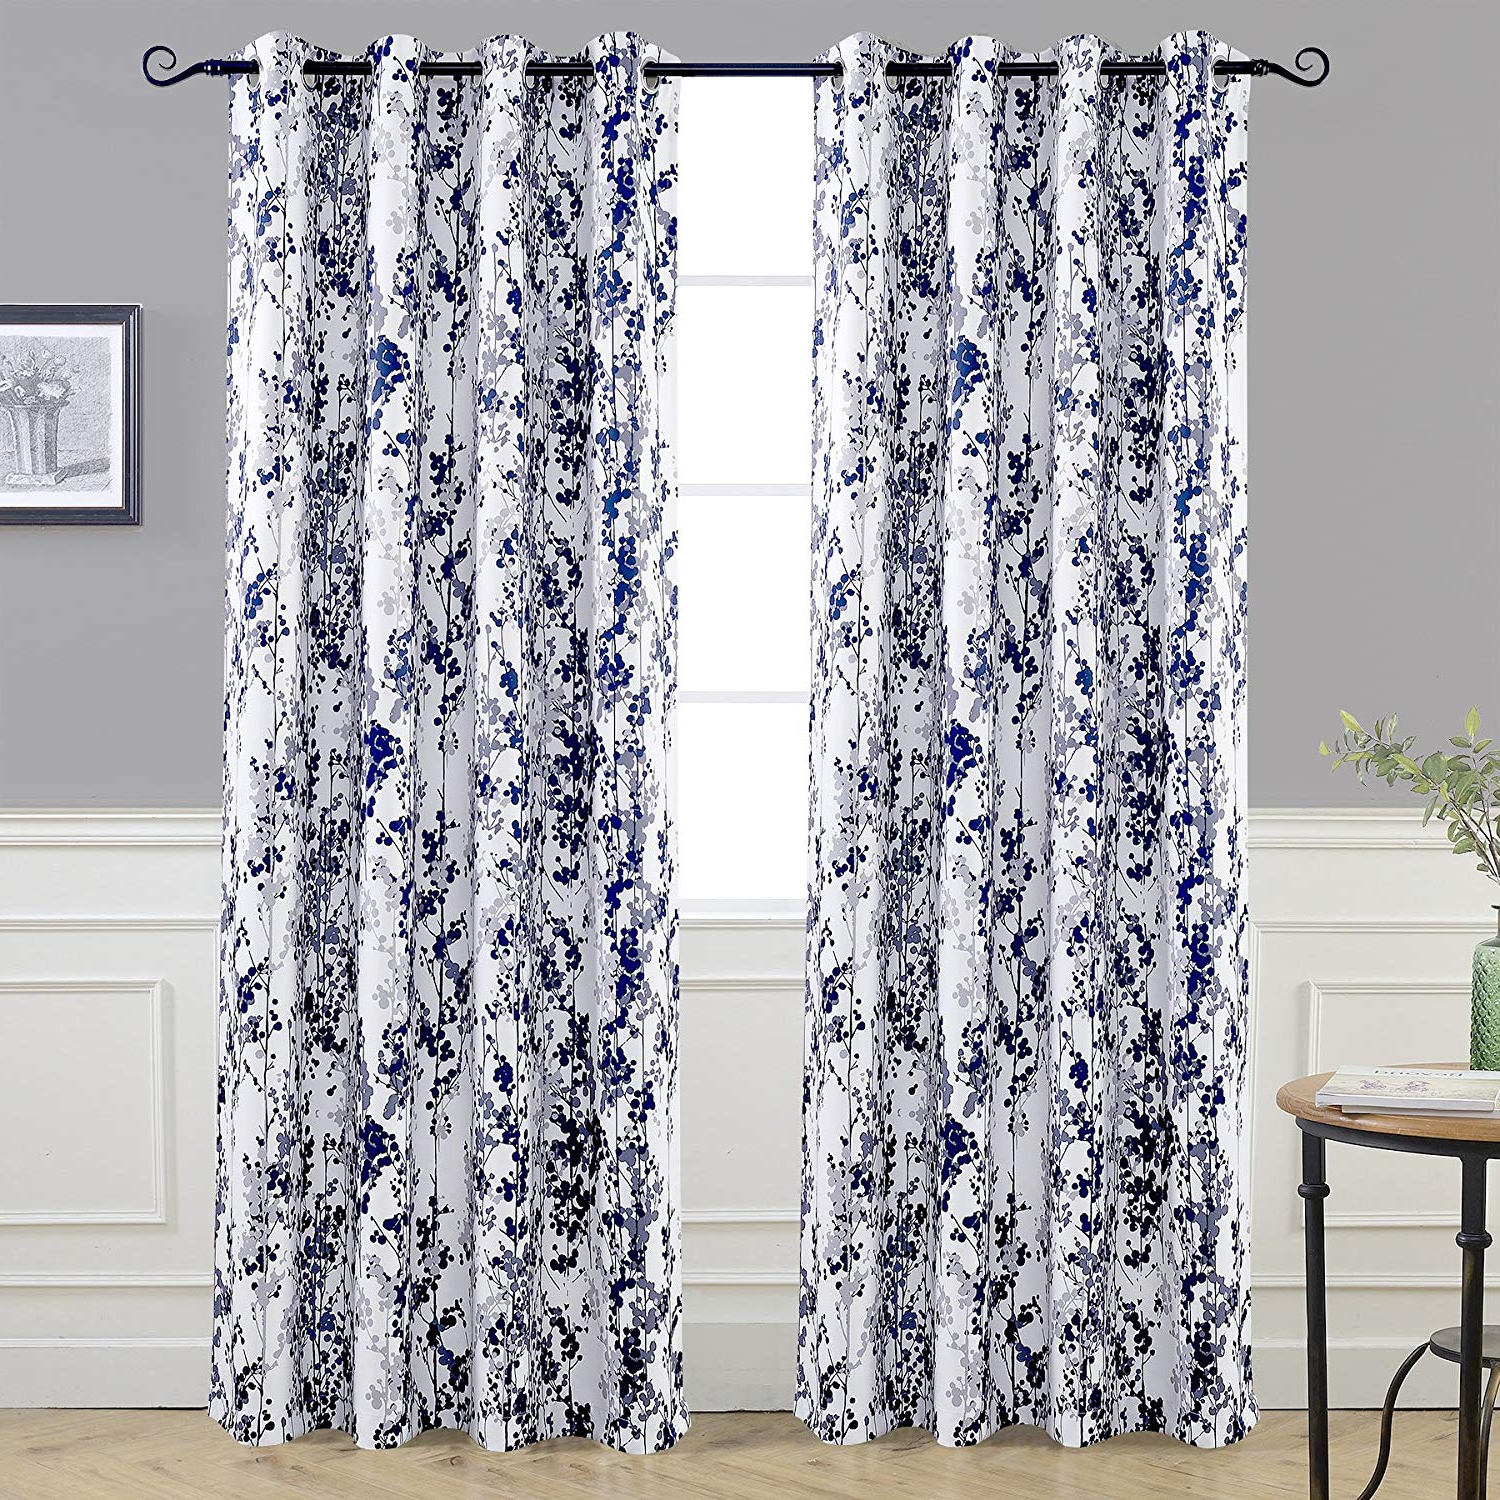 Driftaway Leah Abstract Floral Blossom Ink Painting Room Darkening Thermal Insulated Grommet Unlined Window Curtains 2 Panels Each Size 52 Inch84 In Famous Floral Blossom Ink Painting Thermal Room Darkening Kitchen Tier Pairs (View 2 of 20)